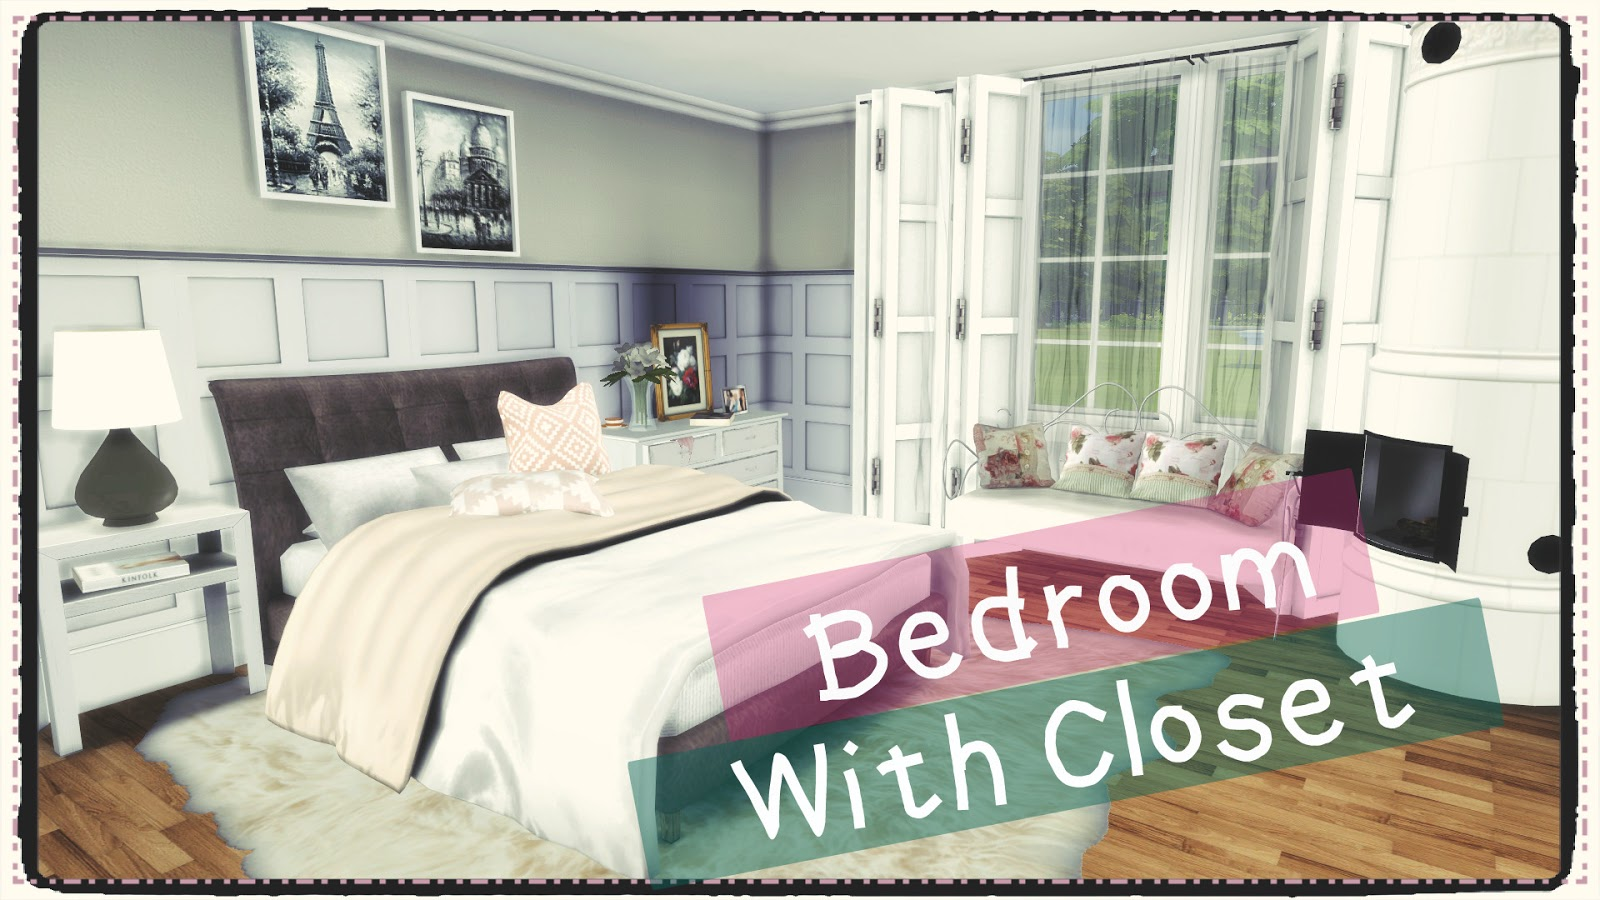 Sims 4 bedroom with closet build decoration dinha for Bedroom designs sims 4